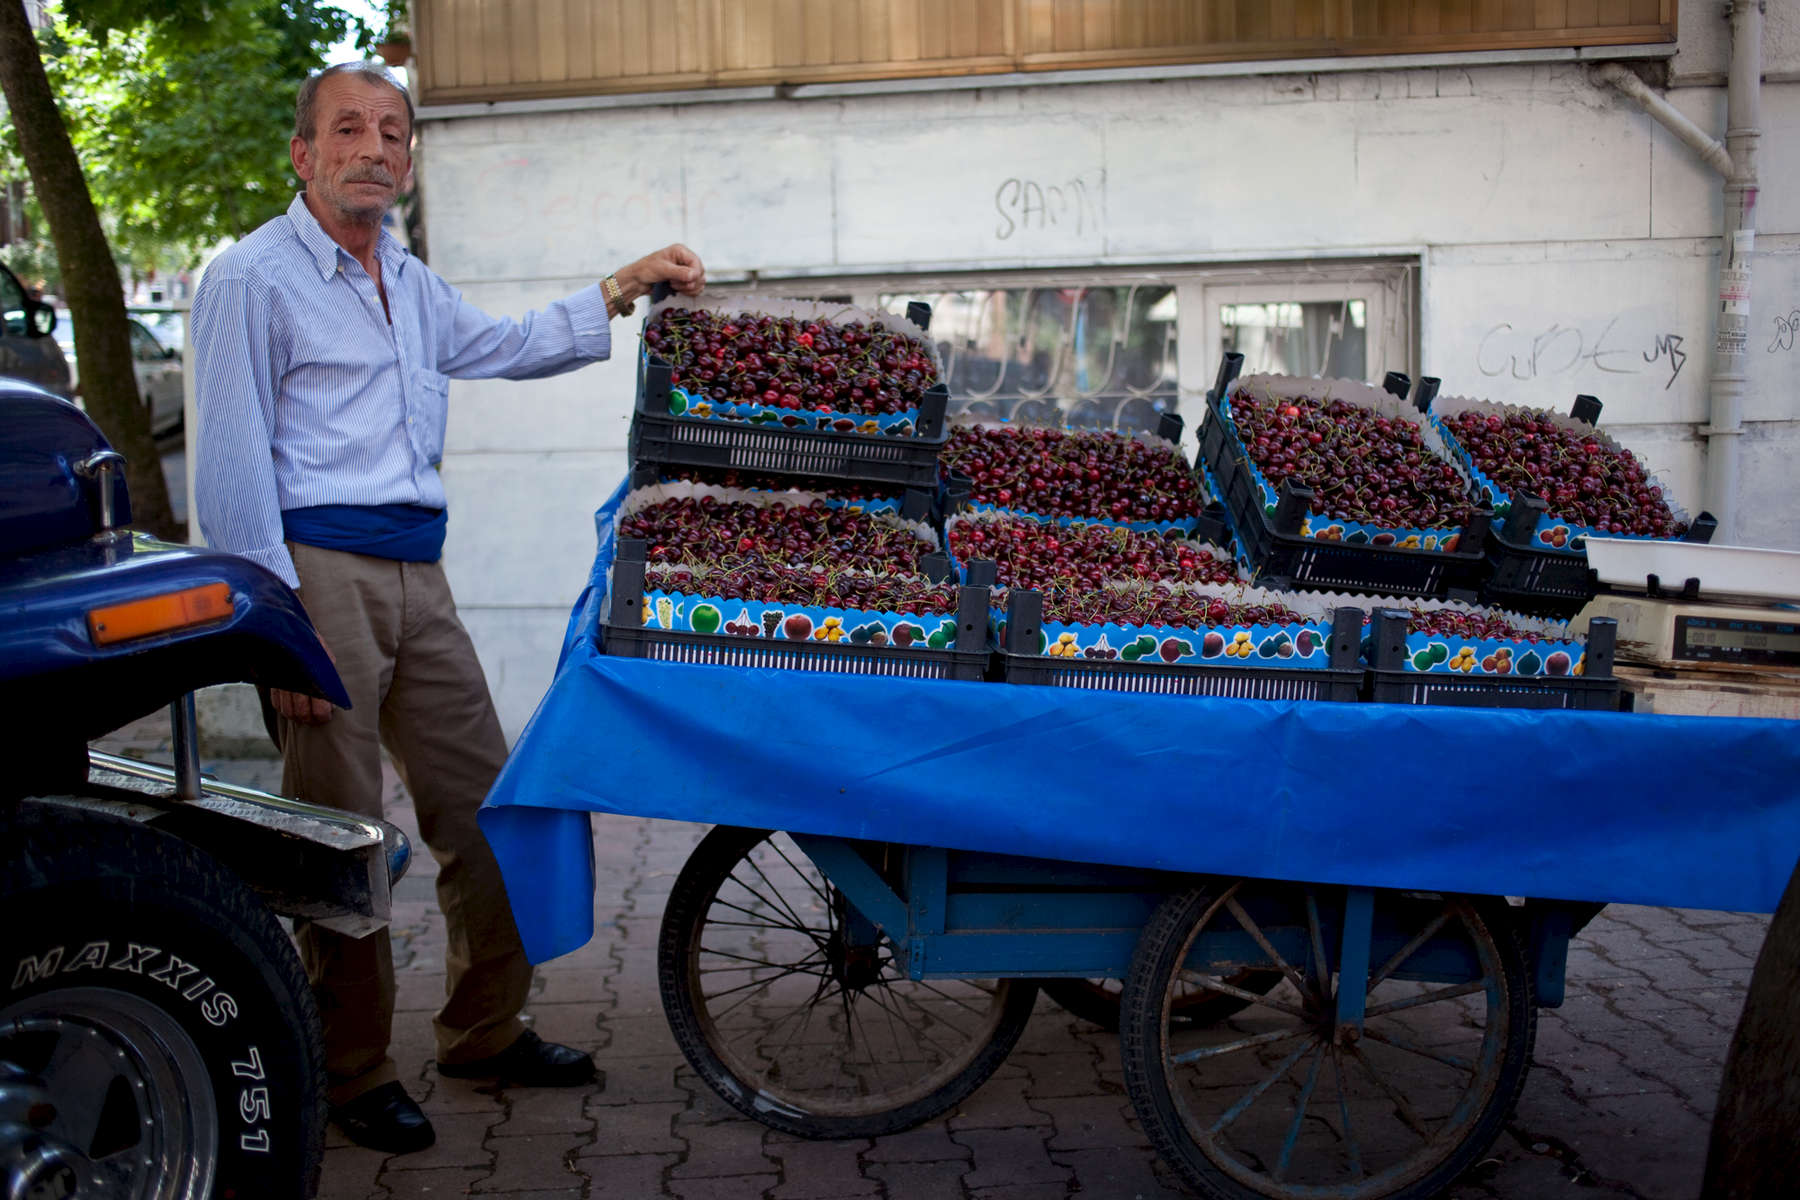 A cherry vendor in Acıbadem.